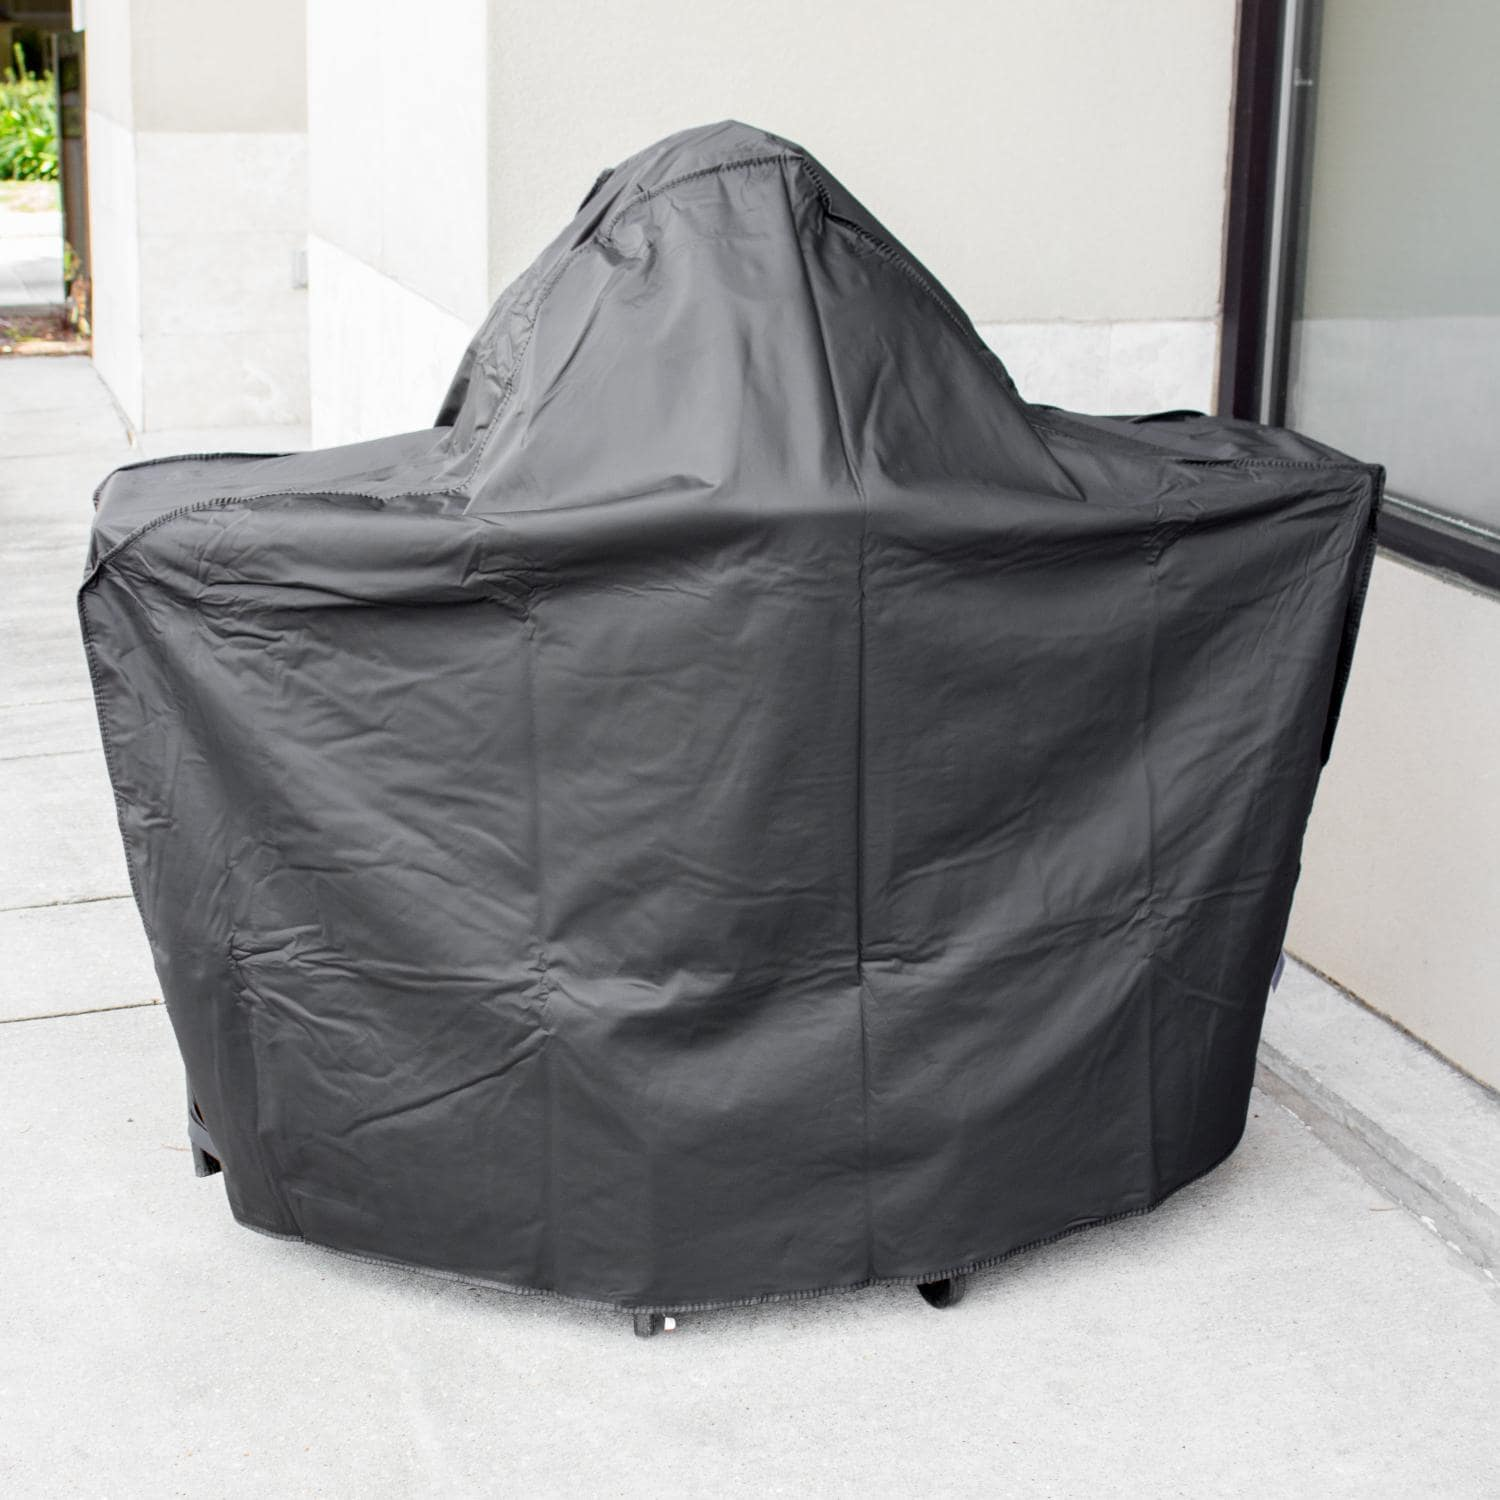 Blaze Grill Cover For Kamado 20-Inch Freestanding Grills - 20KMCTCV